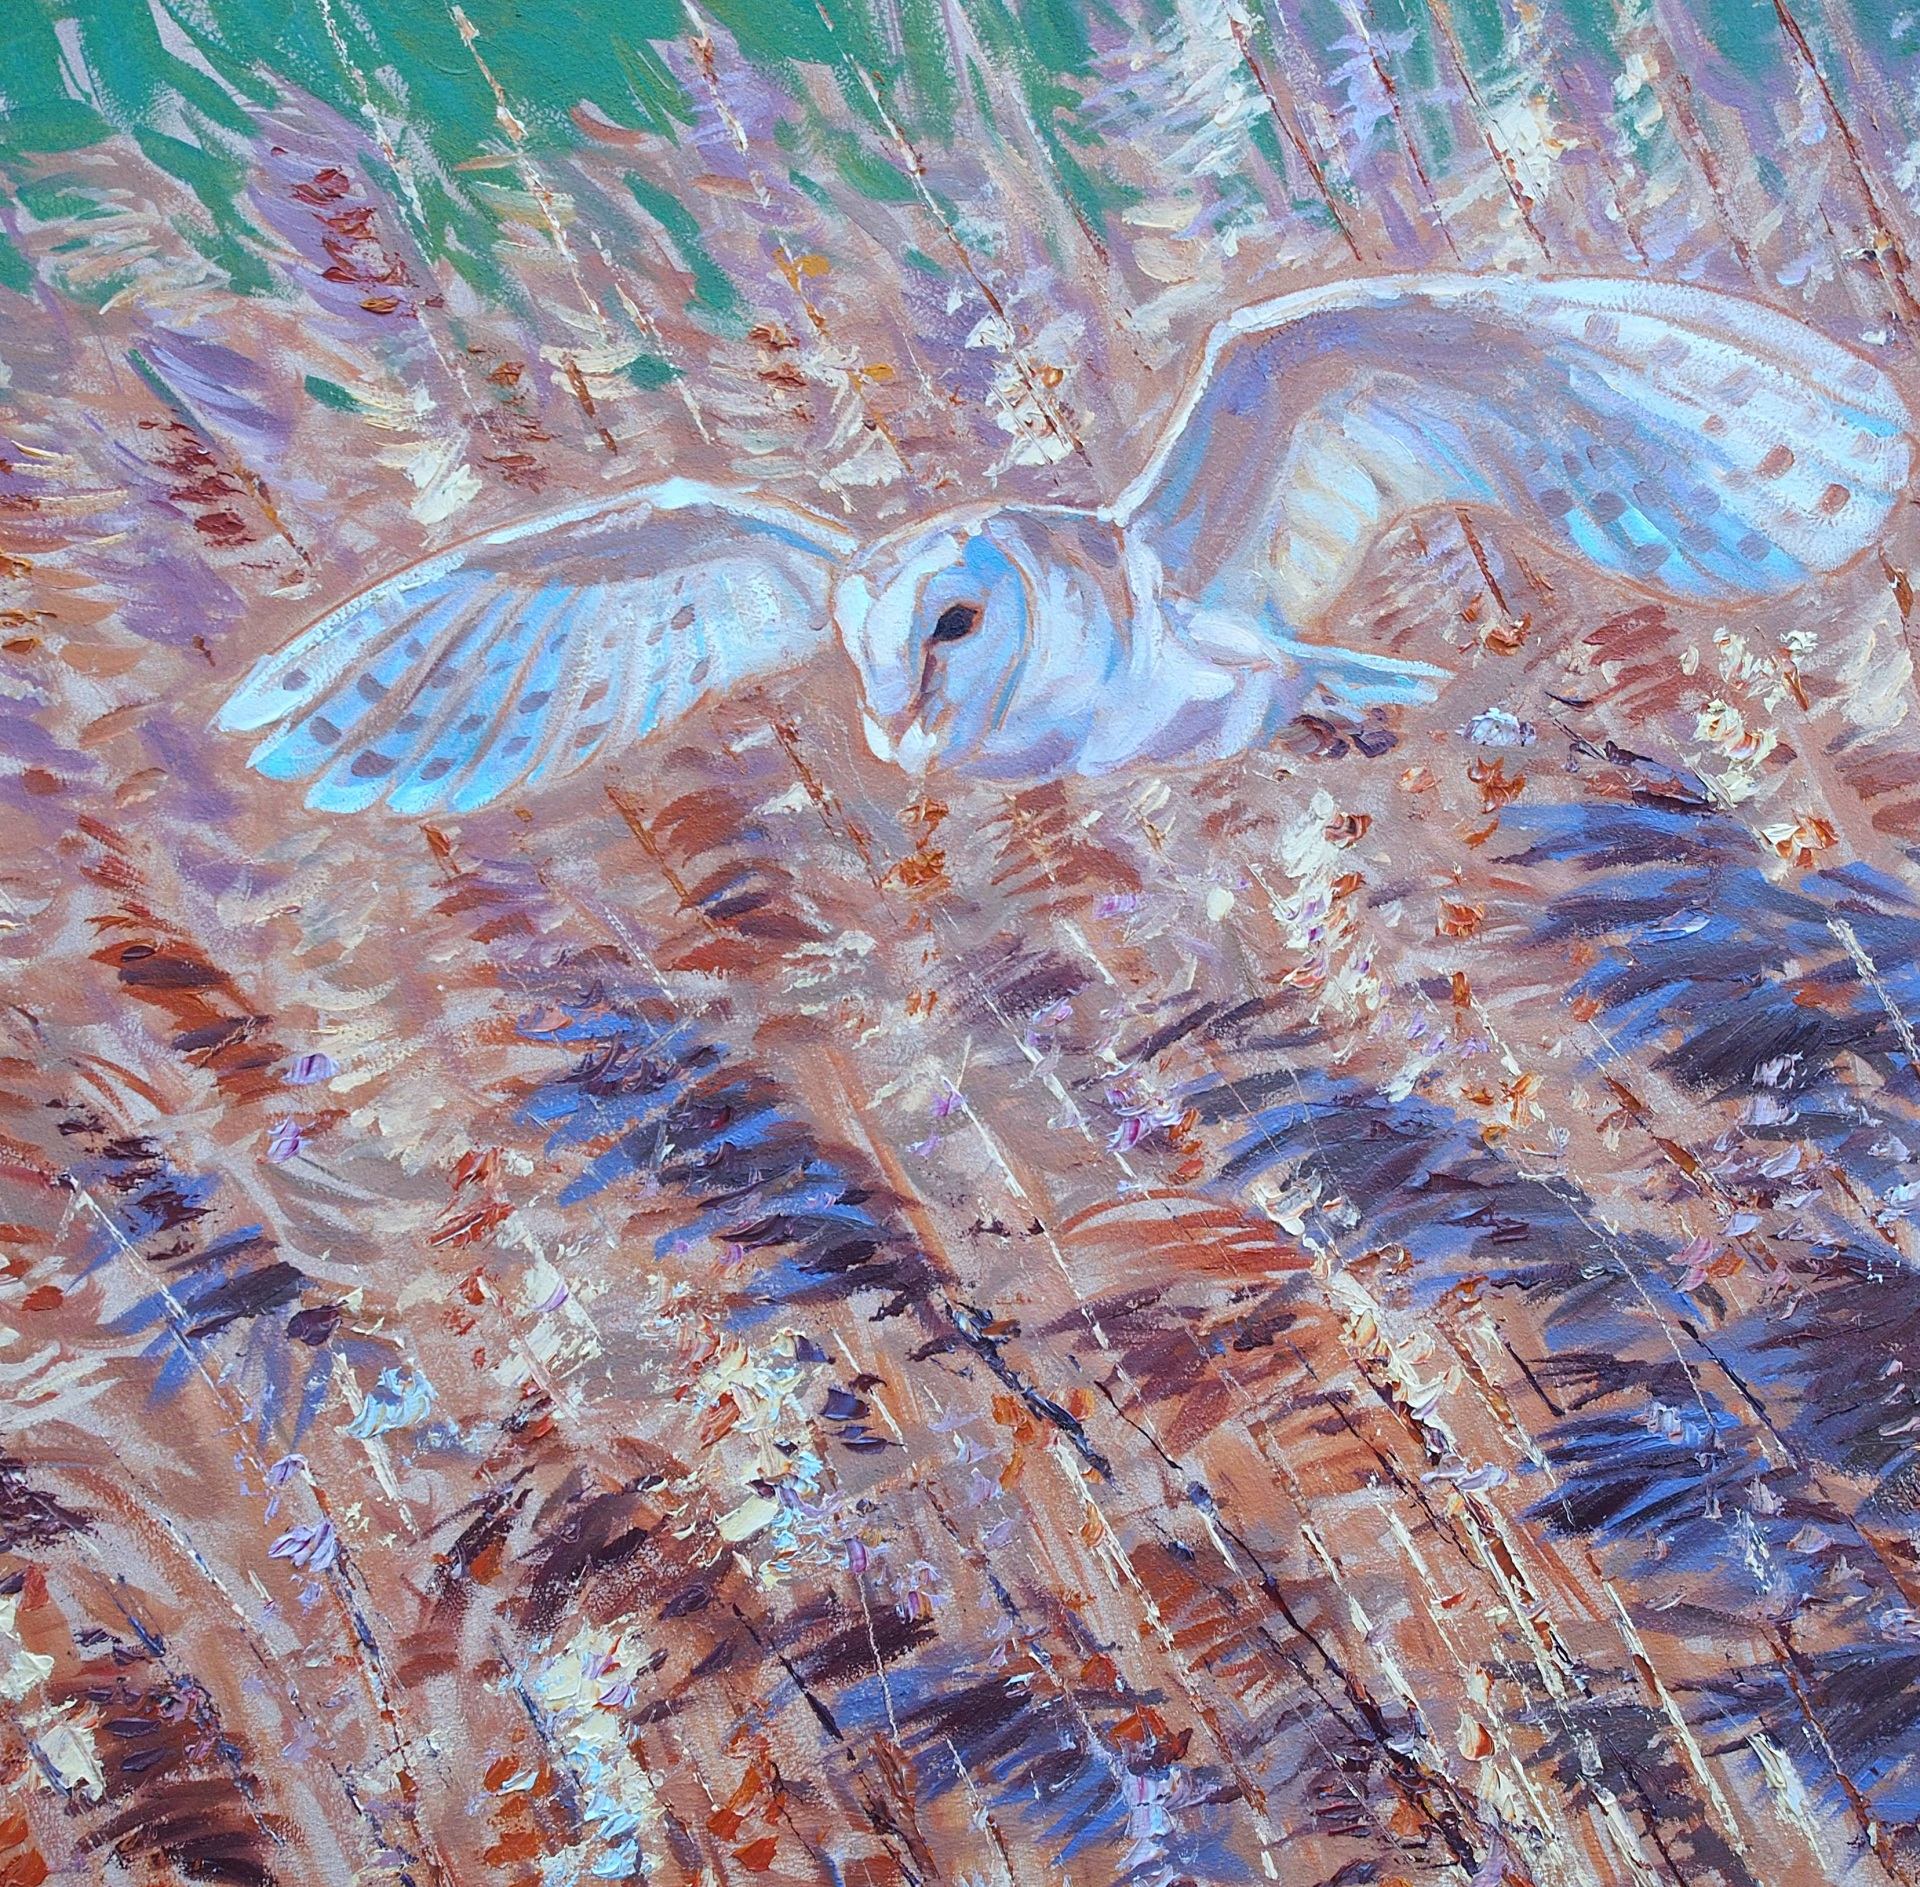 Hunting Barn Owl